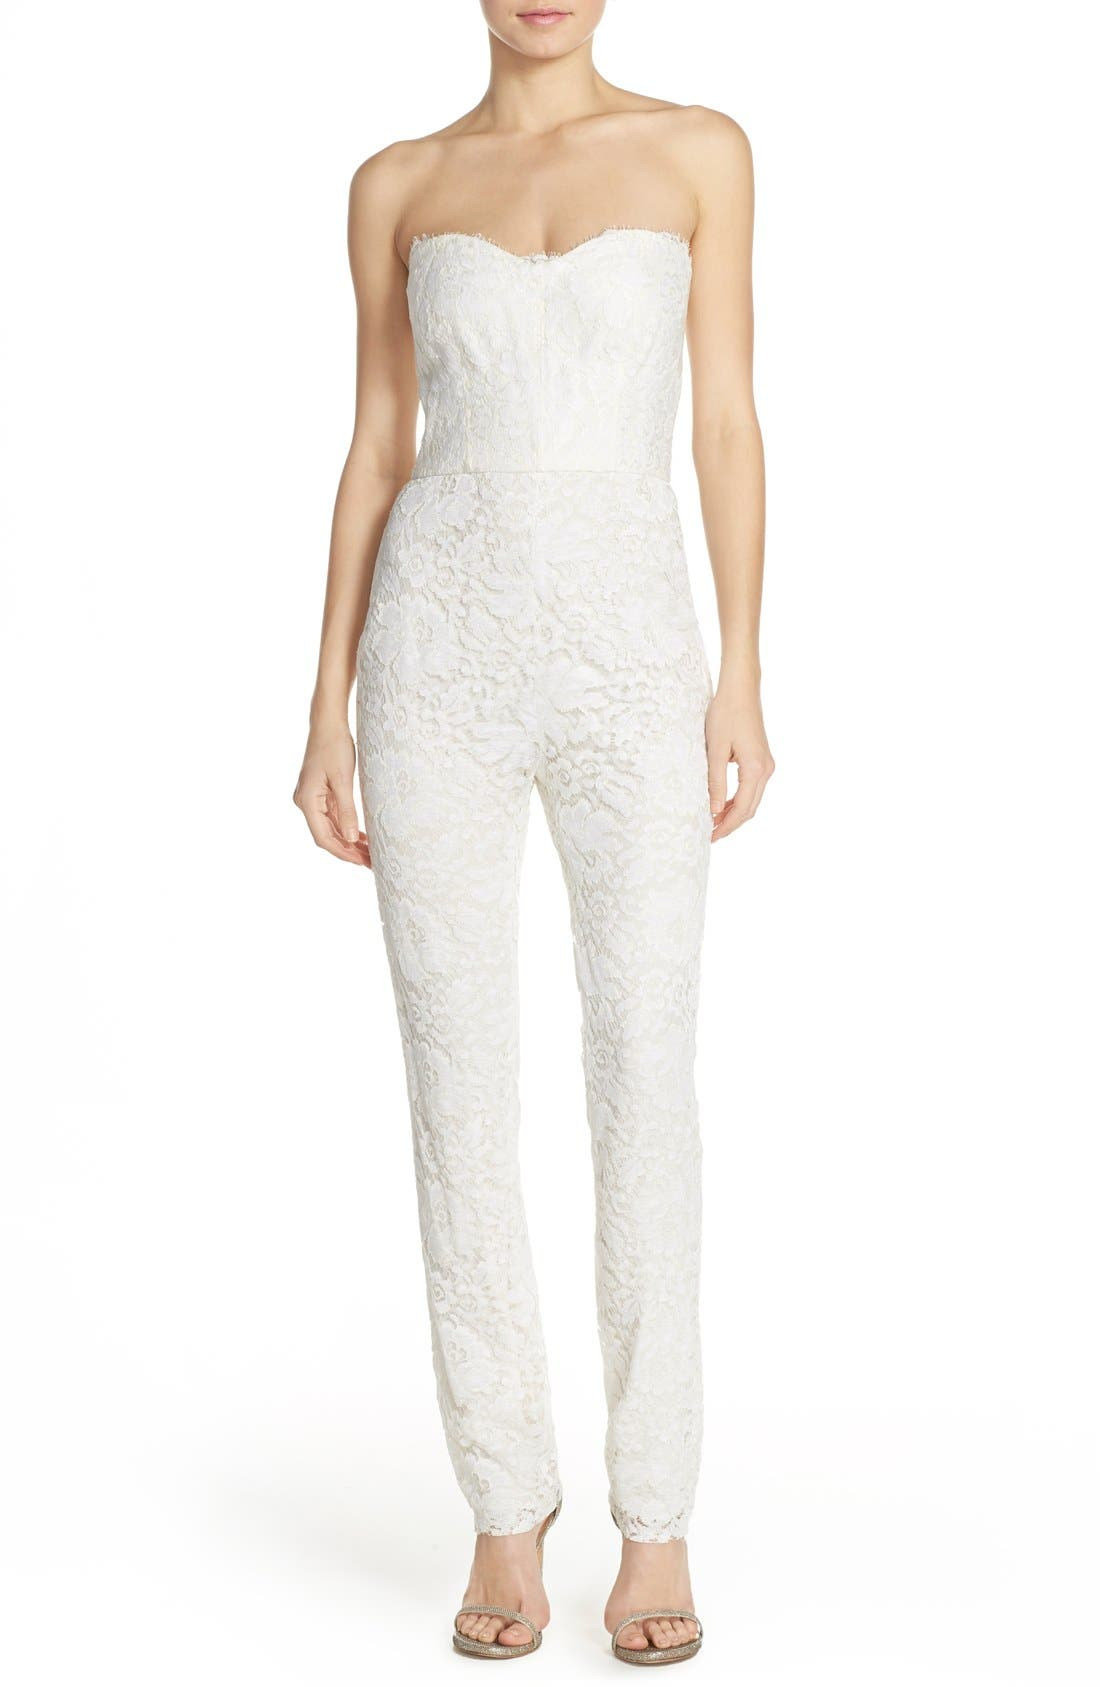 Monique Lhuillier Ready to Wed Strapless Chantilly Lace Jumpsuit,                             Main thumbnail 1, color,                             100